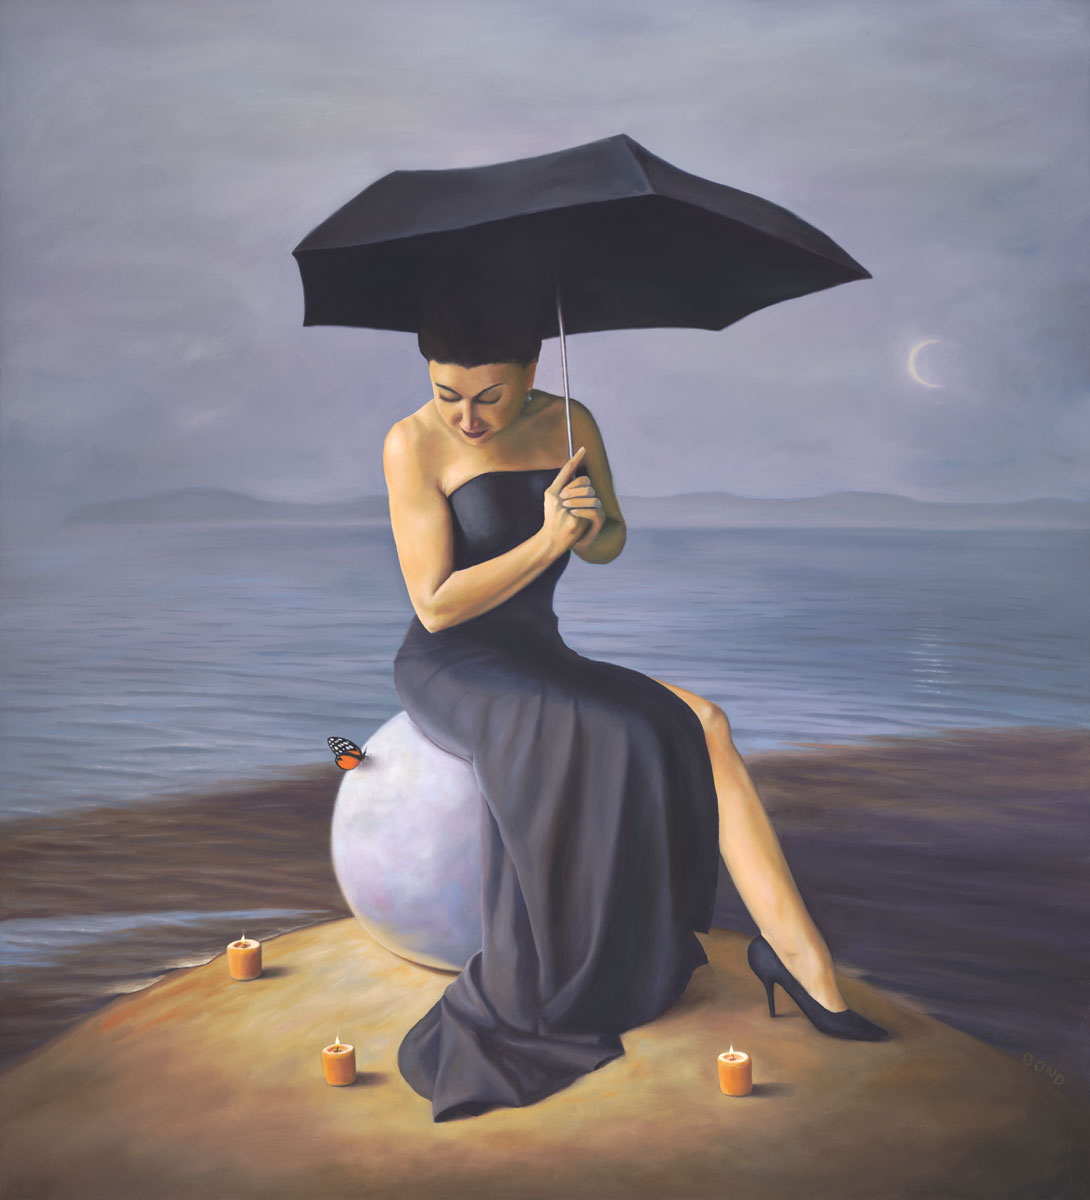 The Luminous Pearl of Her Appointed Plenitude, painting of a woman wearing a black dress sitting on a rock holding an umbrella with candles and a butterfly around her, art about woman dreaming, female figure sitting on a giant pearl, painting with butterflies and  ocean, sea, water, umbrella, black dress, candles, catalina, ceremony, ceremonial, moon, soulful uplifting inspirational art, soul stirring illusion art, romantic art,  surrealism, surreal art, dreamlike imagery, fanciful art, fantasy art, dreamscape visual, metaphysical art, spiritual painting, metaphysical painting, spiritual art, whimsical art, whimsy art, dream art, fantastic realism art, magic realism oil painting by Paul Bond